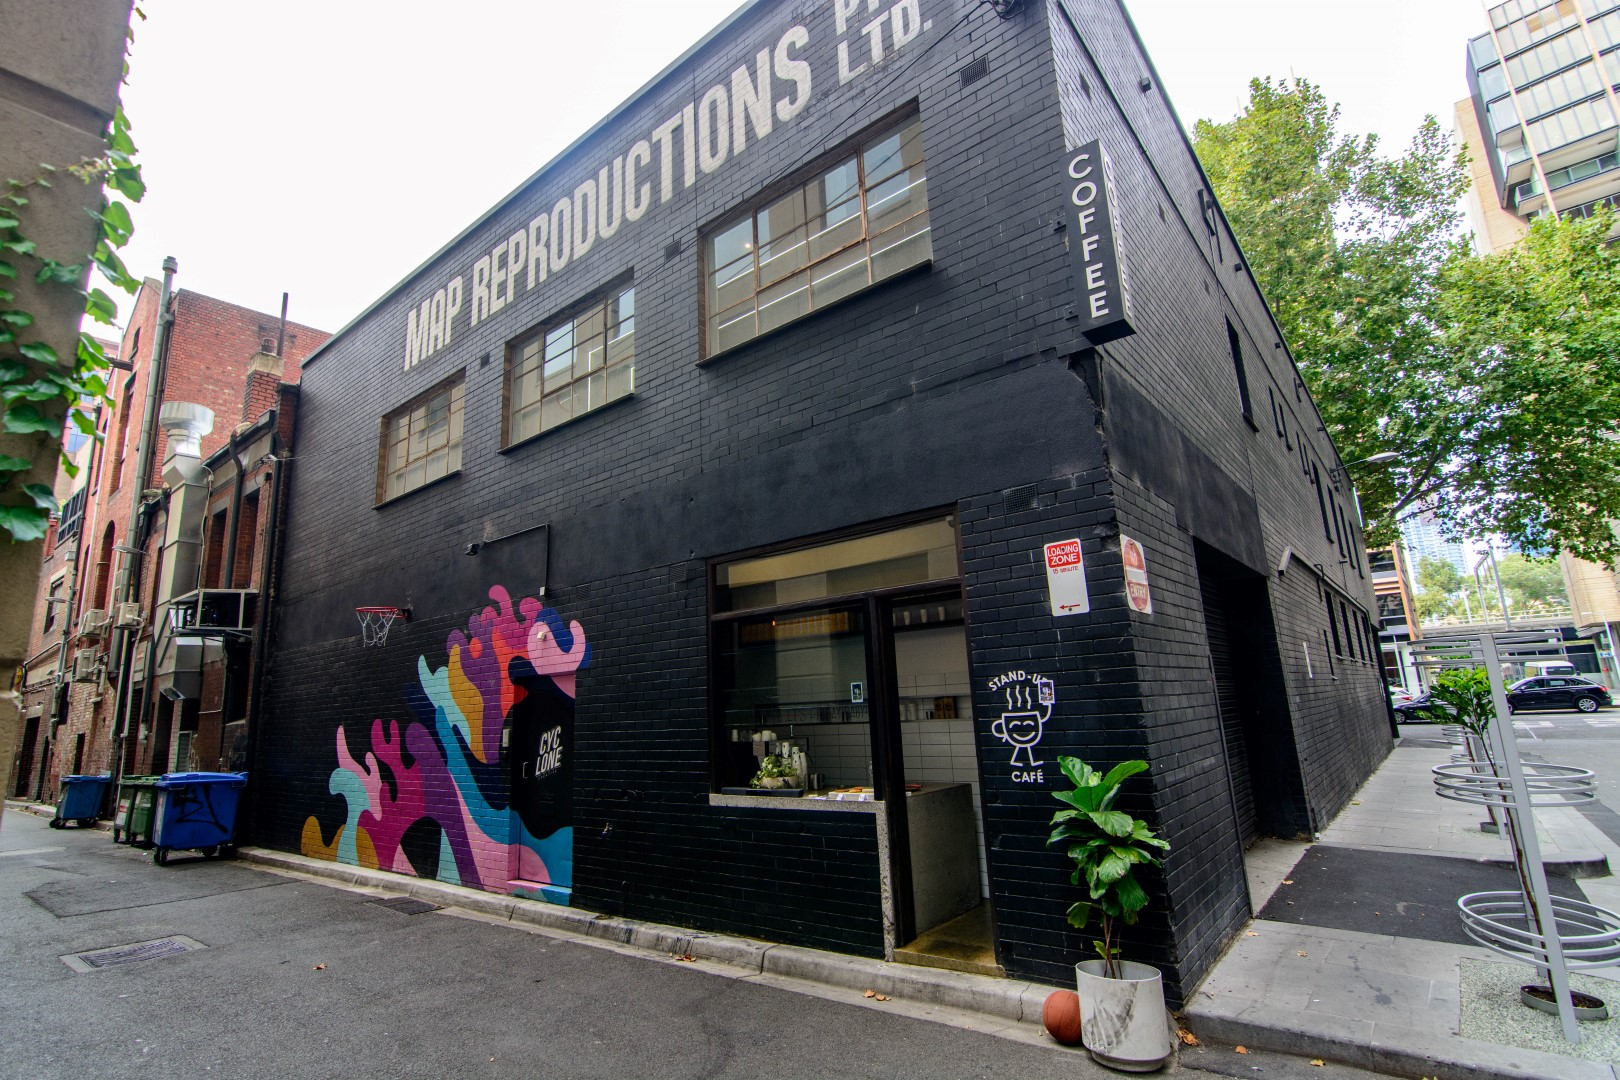 A large black building on a laneway with a colourful mural on the side